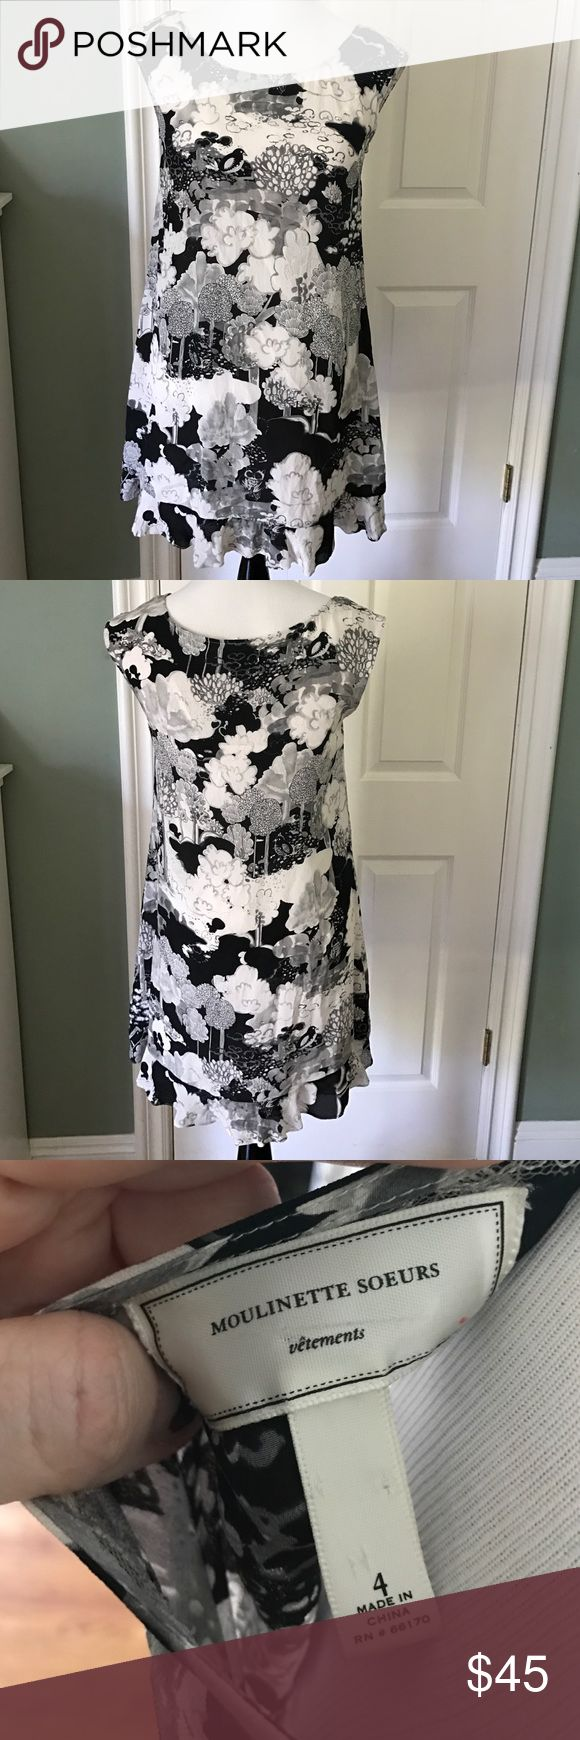 Moulinette Soeurs Black White Print Silk Dress 4 Sweet sleeveless black and white floral and bird print with bottom ruffle. Dress is 100% silk, lining is acetate. Anthropologie brand.  Dress is size 4, mannequin is a size 6. Bundle two items to save 20% Anthropologie Dresses